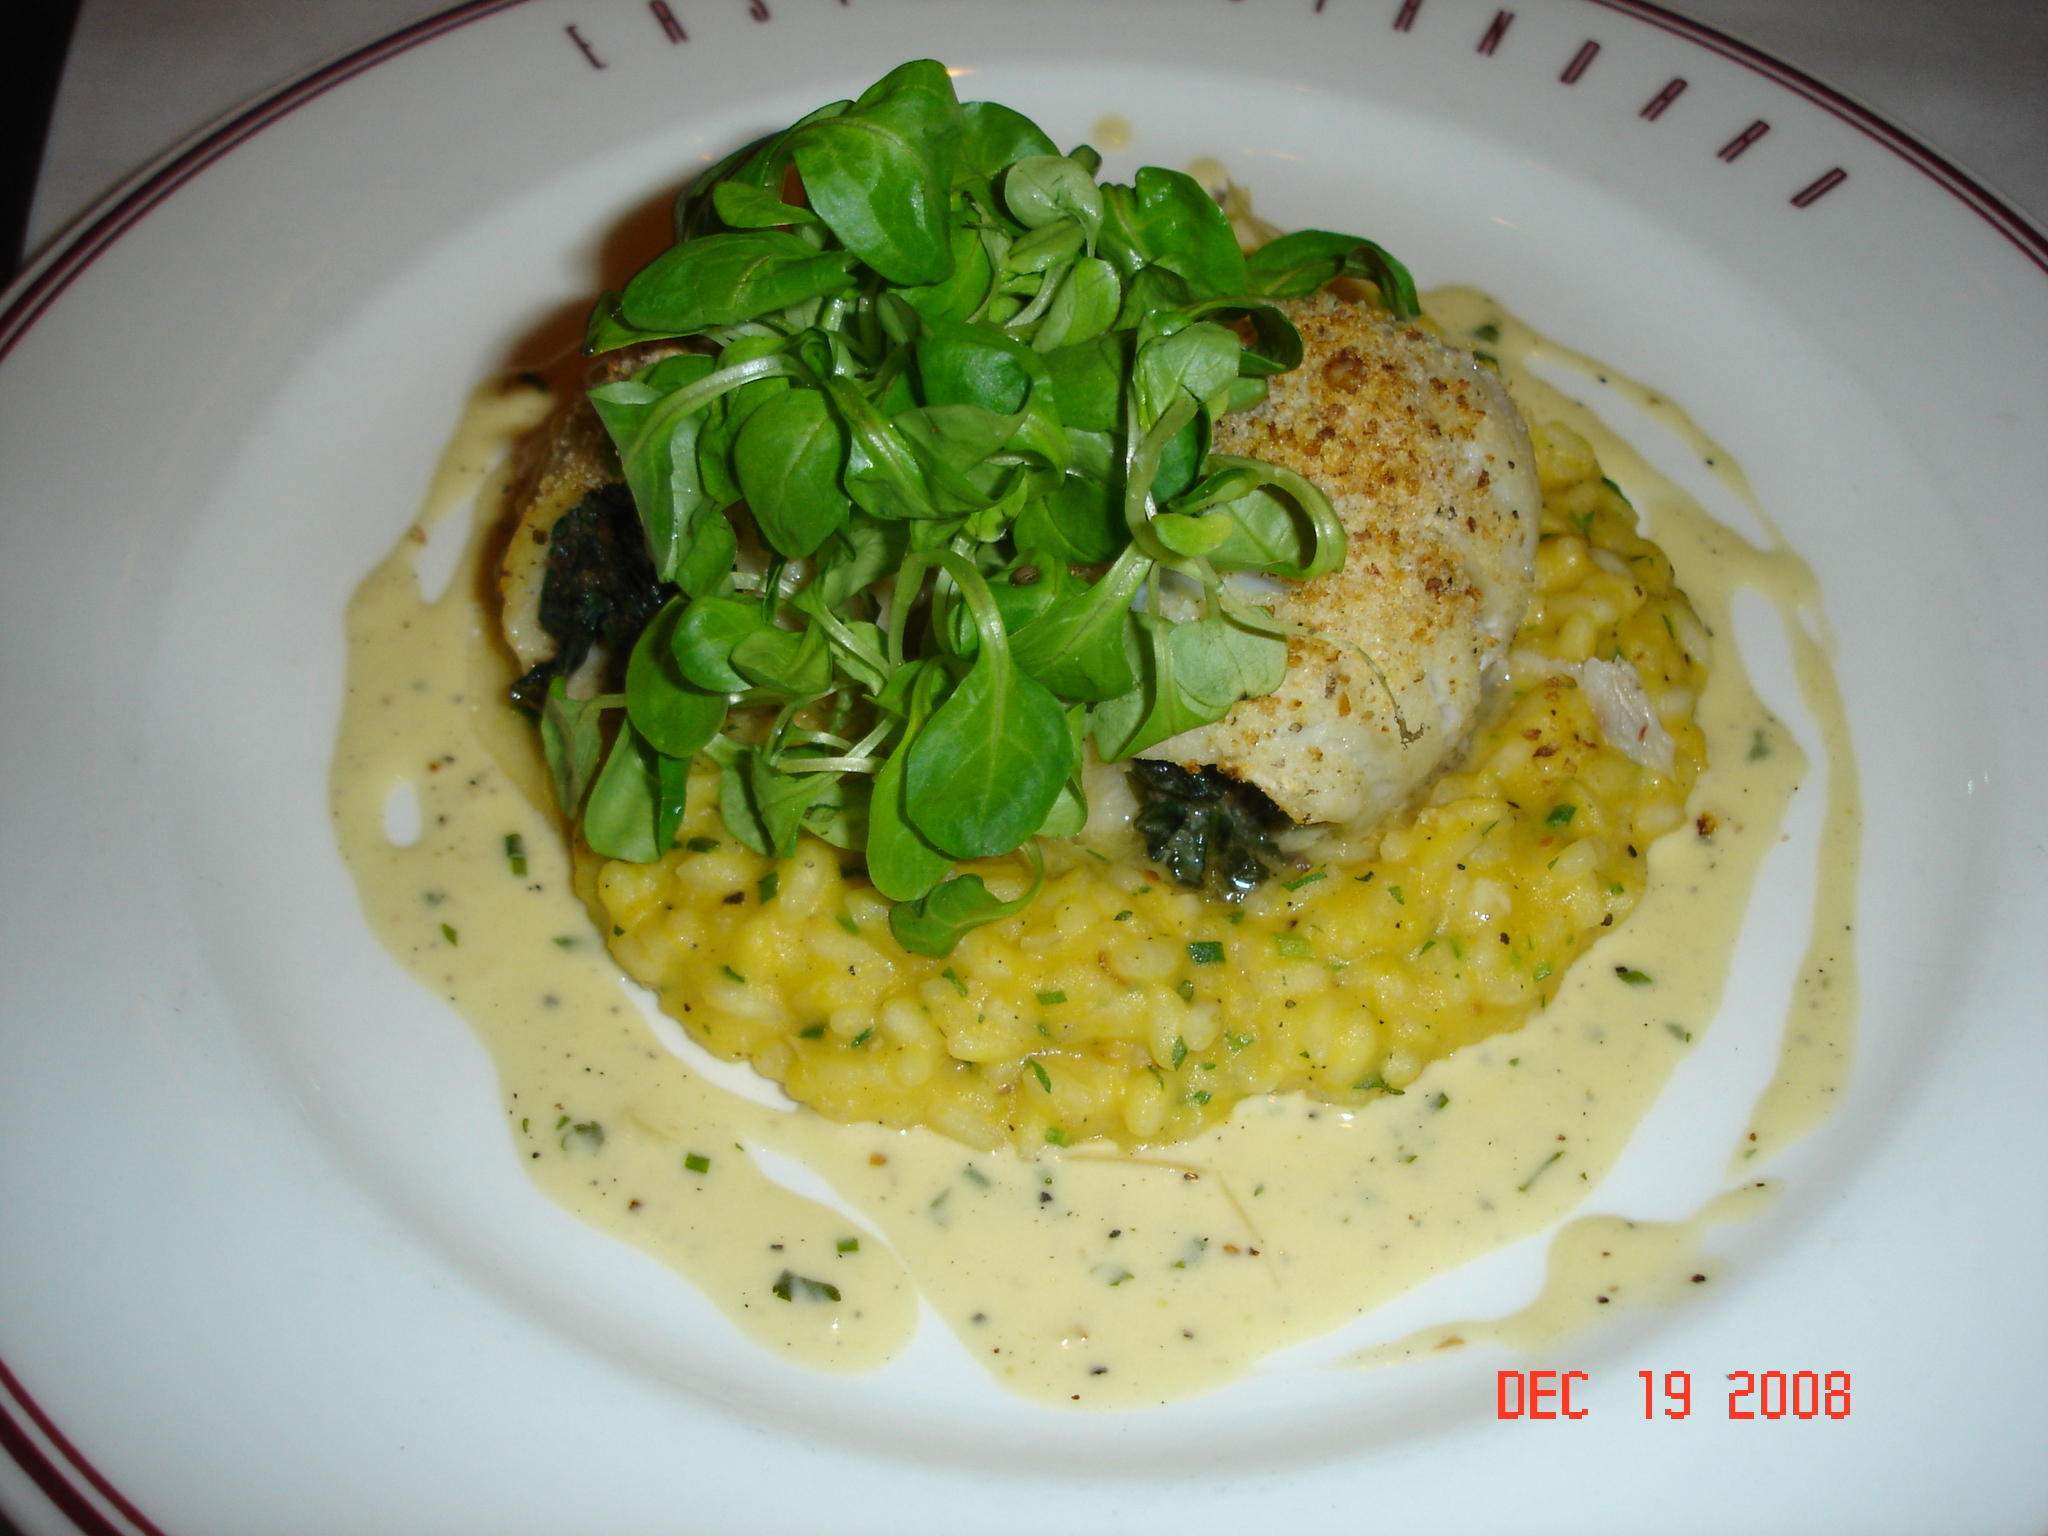 Sole with Pumpkin Risotto - Special of the Day